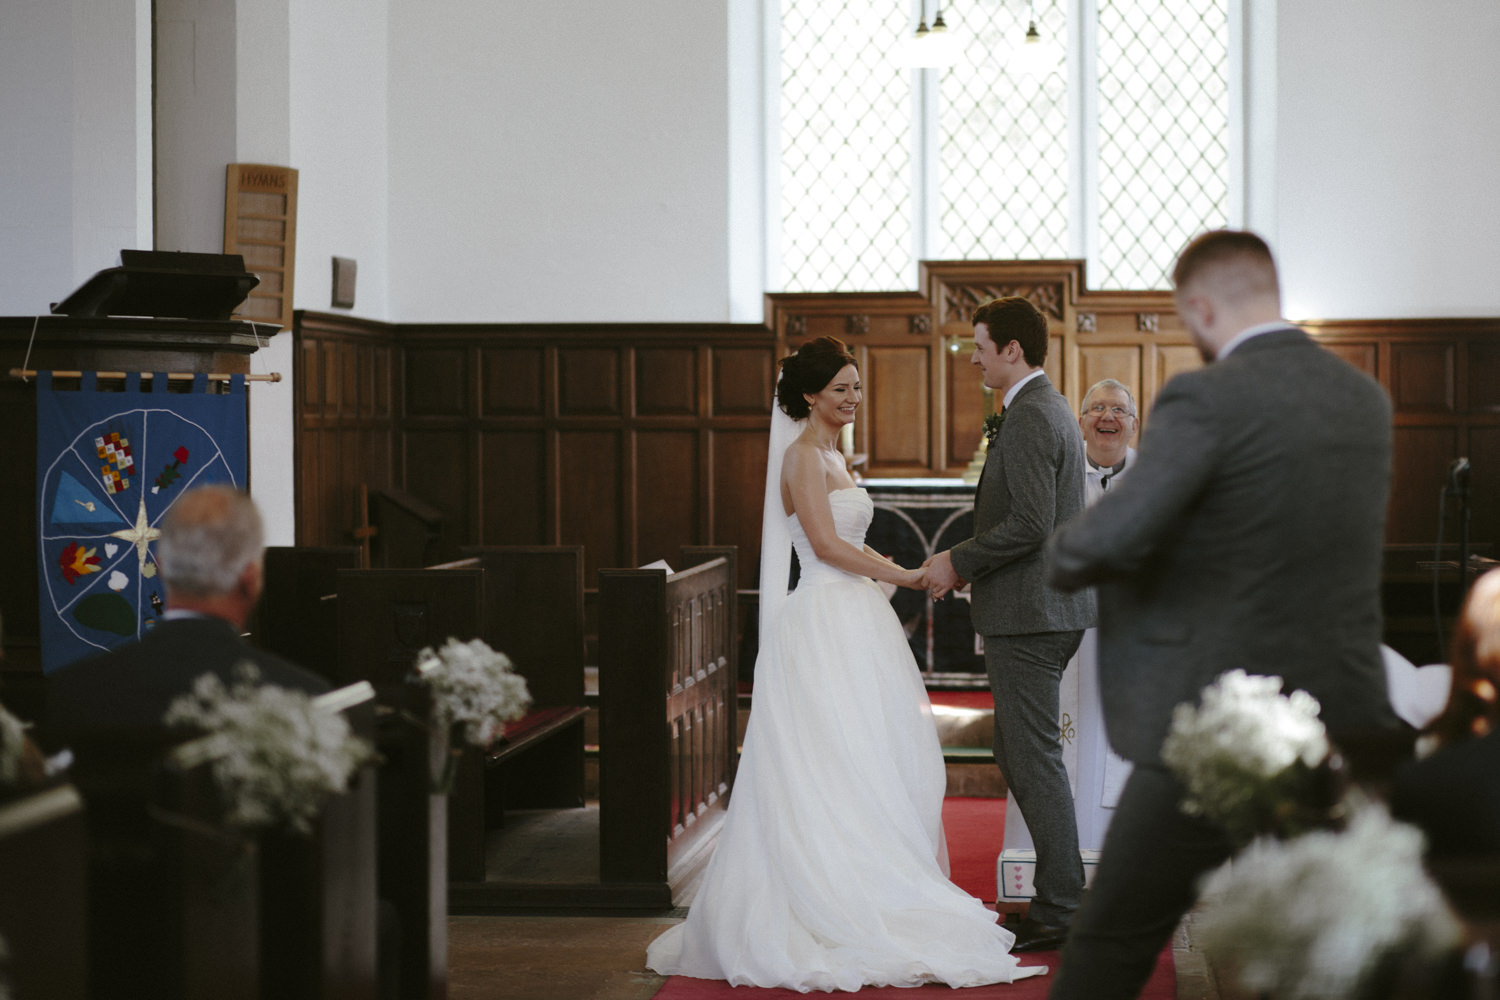 Askham-Hall-Wedding-Websize-184.jpg